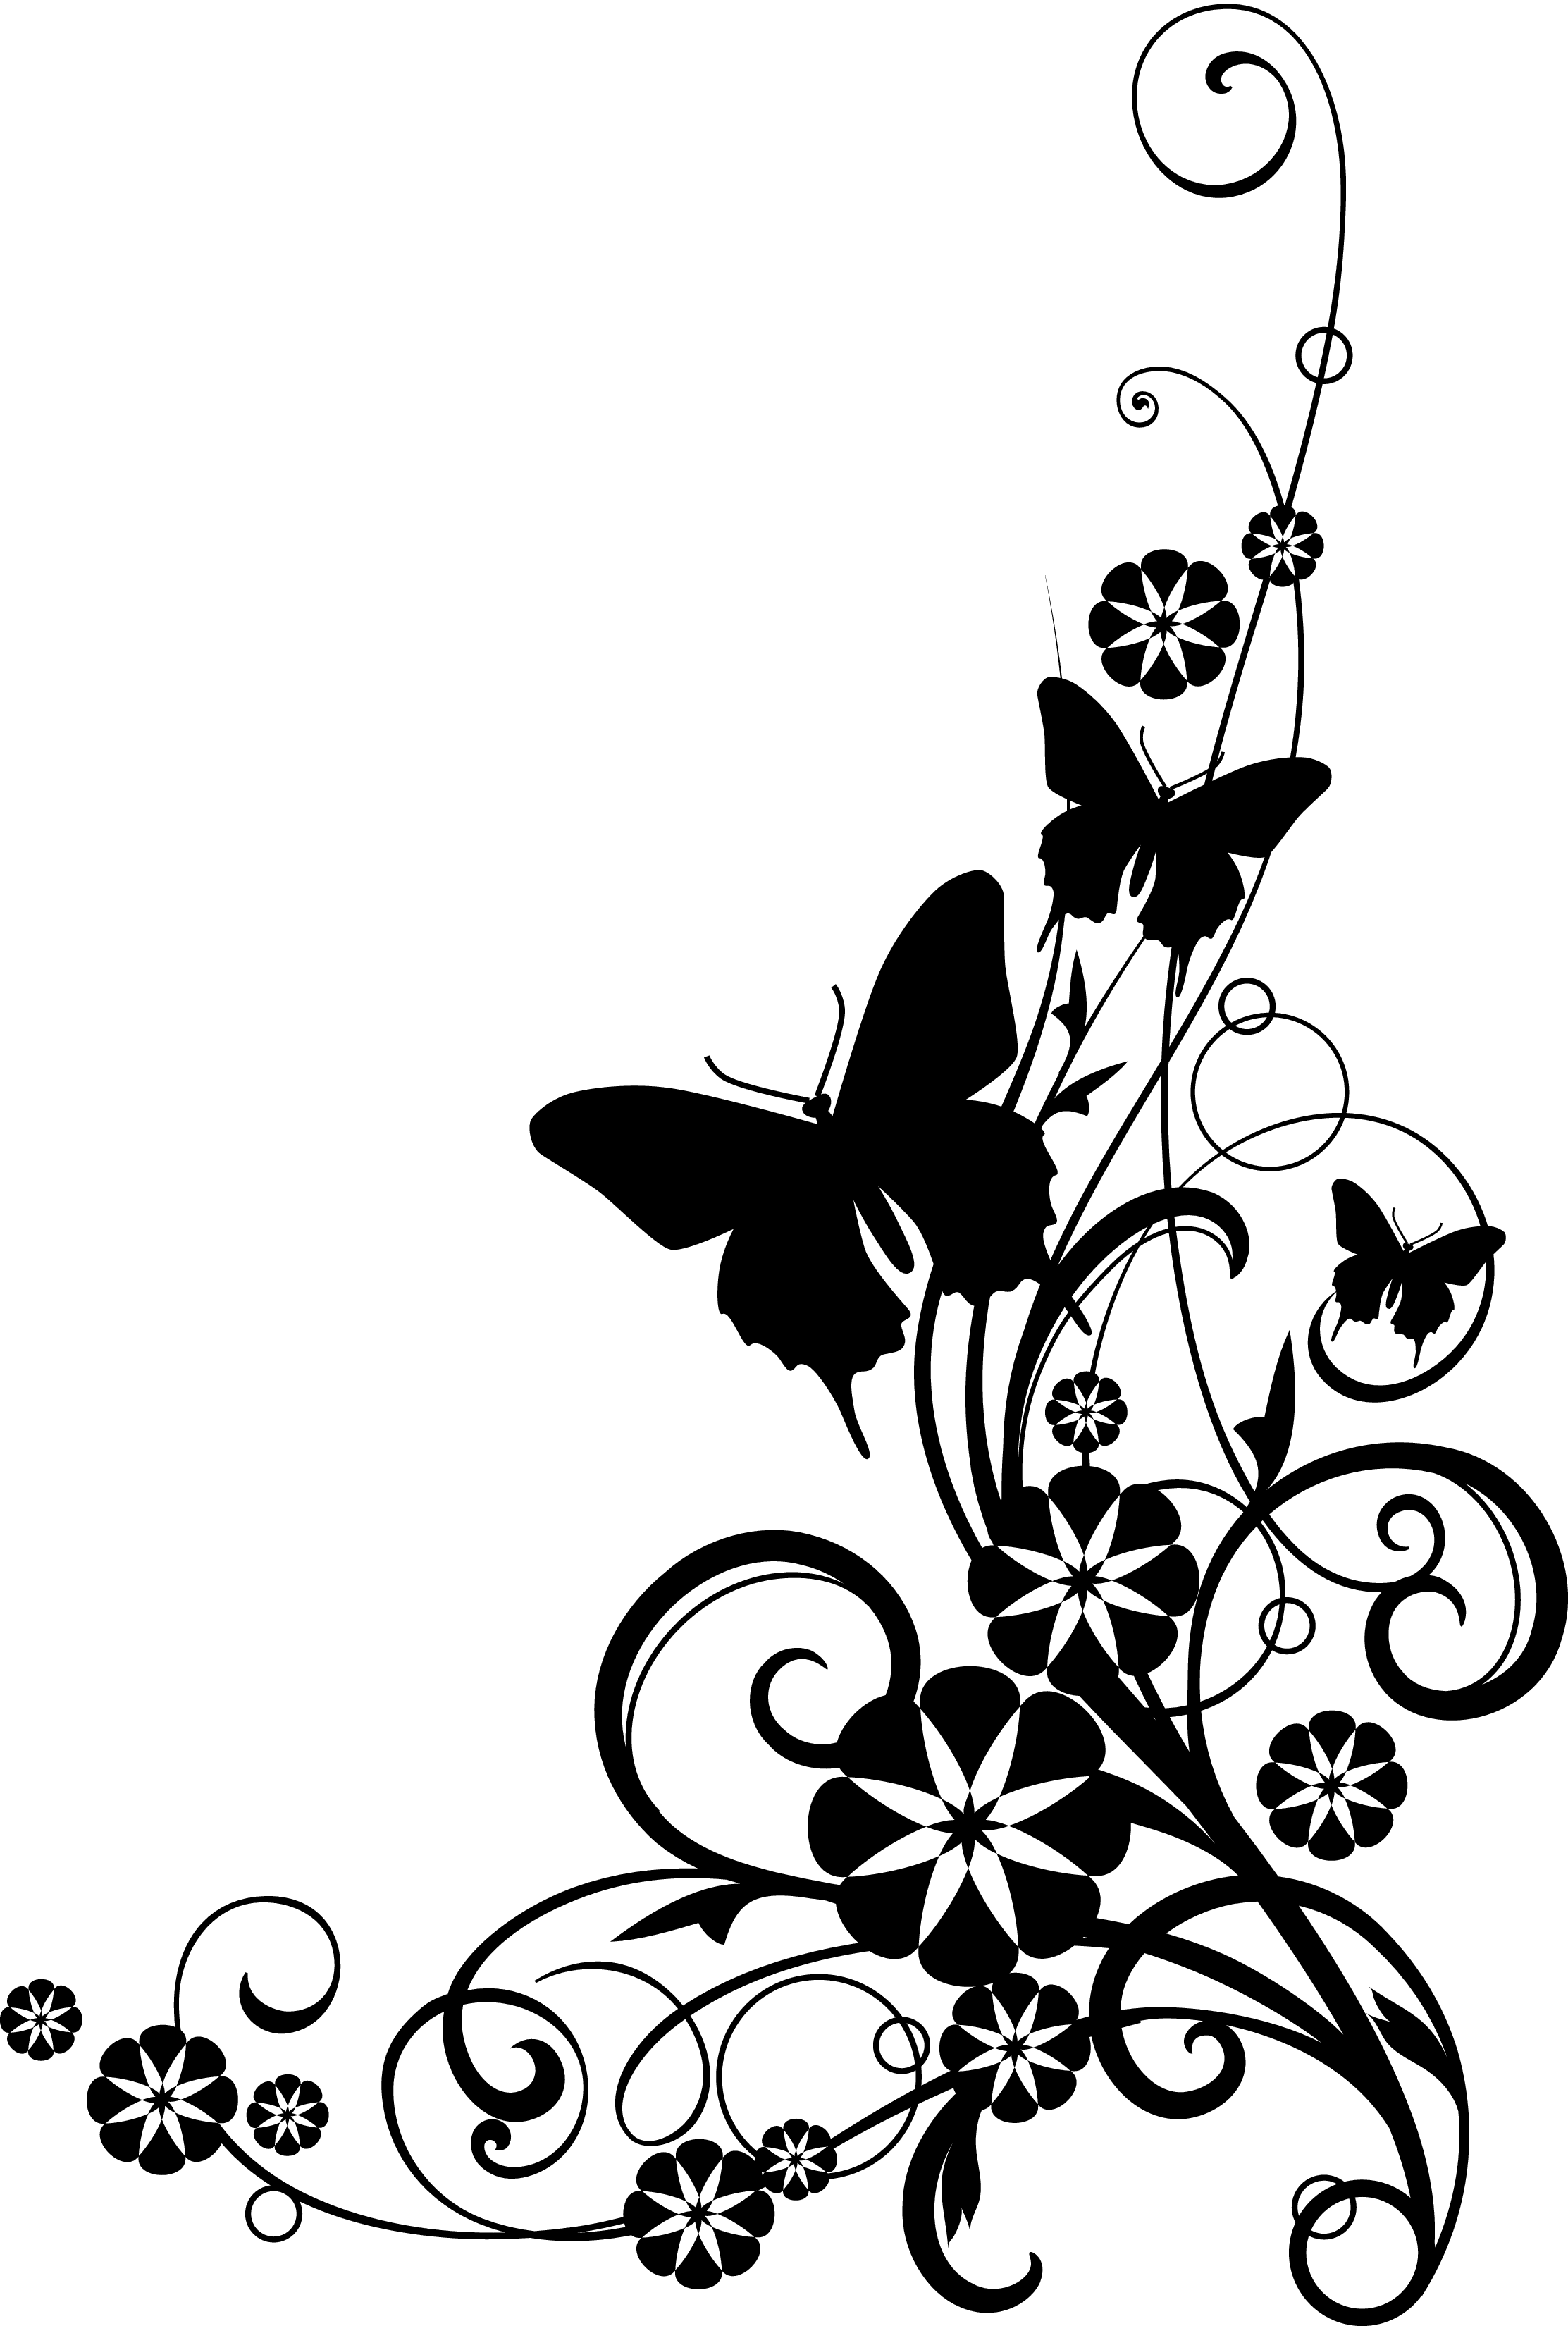 Black and white snowflake border clipart clipart download 8c59ec4066e54d3f207a7d2aa92e8274_vine-clipart-black-and-white ... clipart download